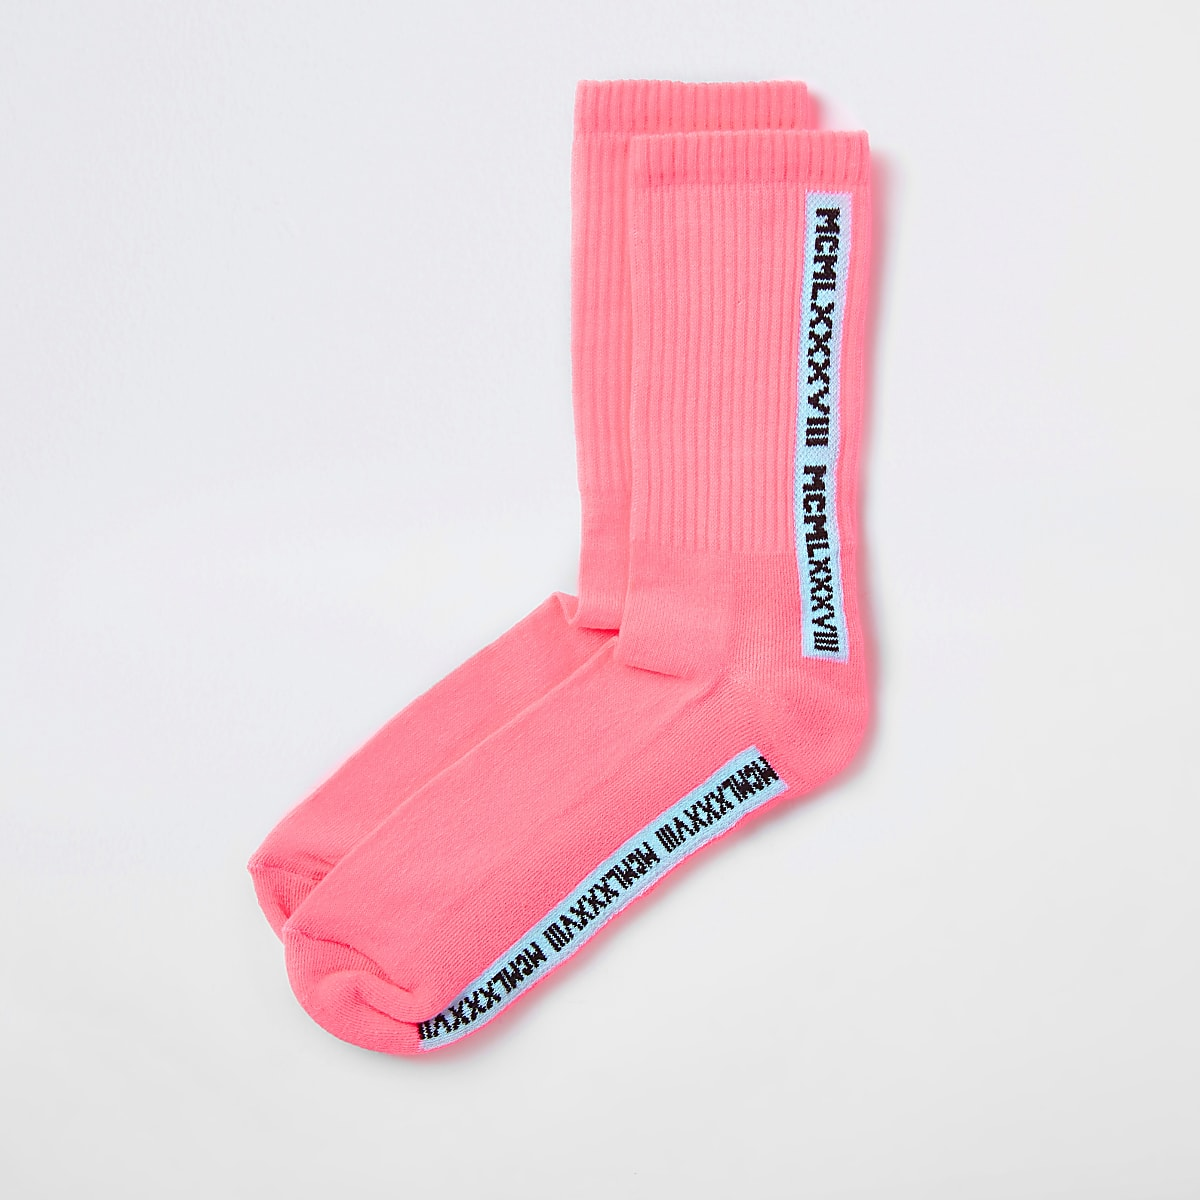 Pink 'Mcmlx' tube socks